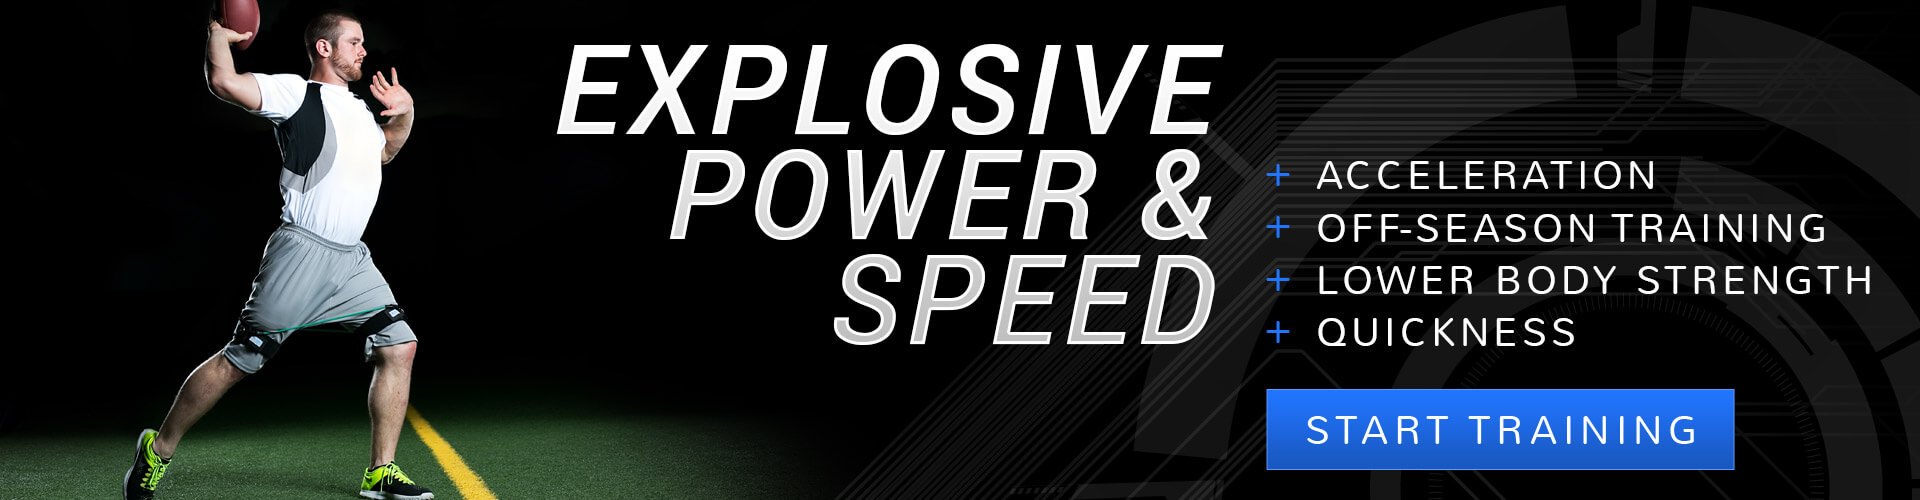 Gain explosive speed and power in football by training with Kinetic Bands. Improve acceleration, lower body strength, quickness while you pracitce; great for off-season training too!